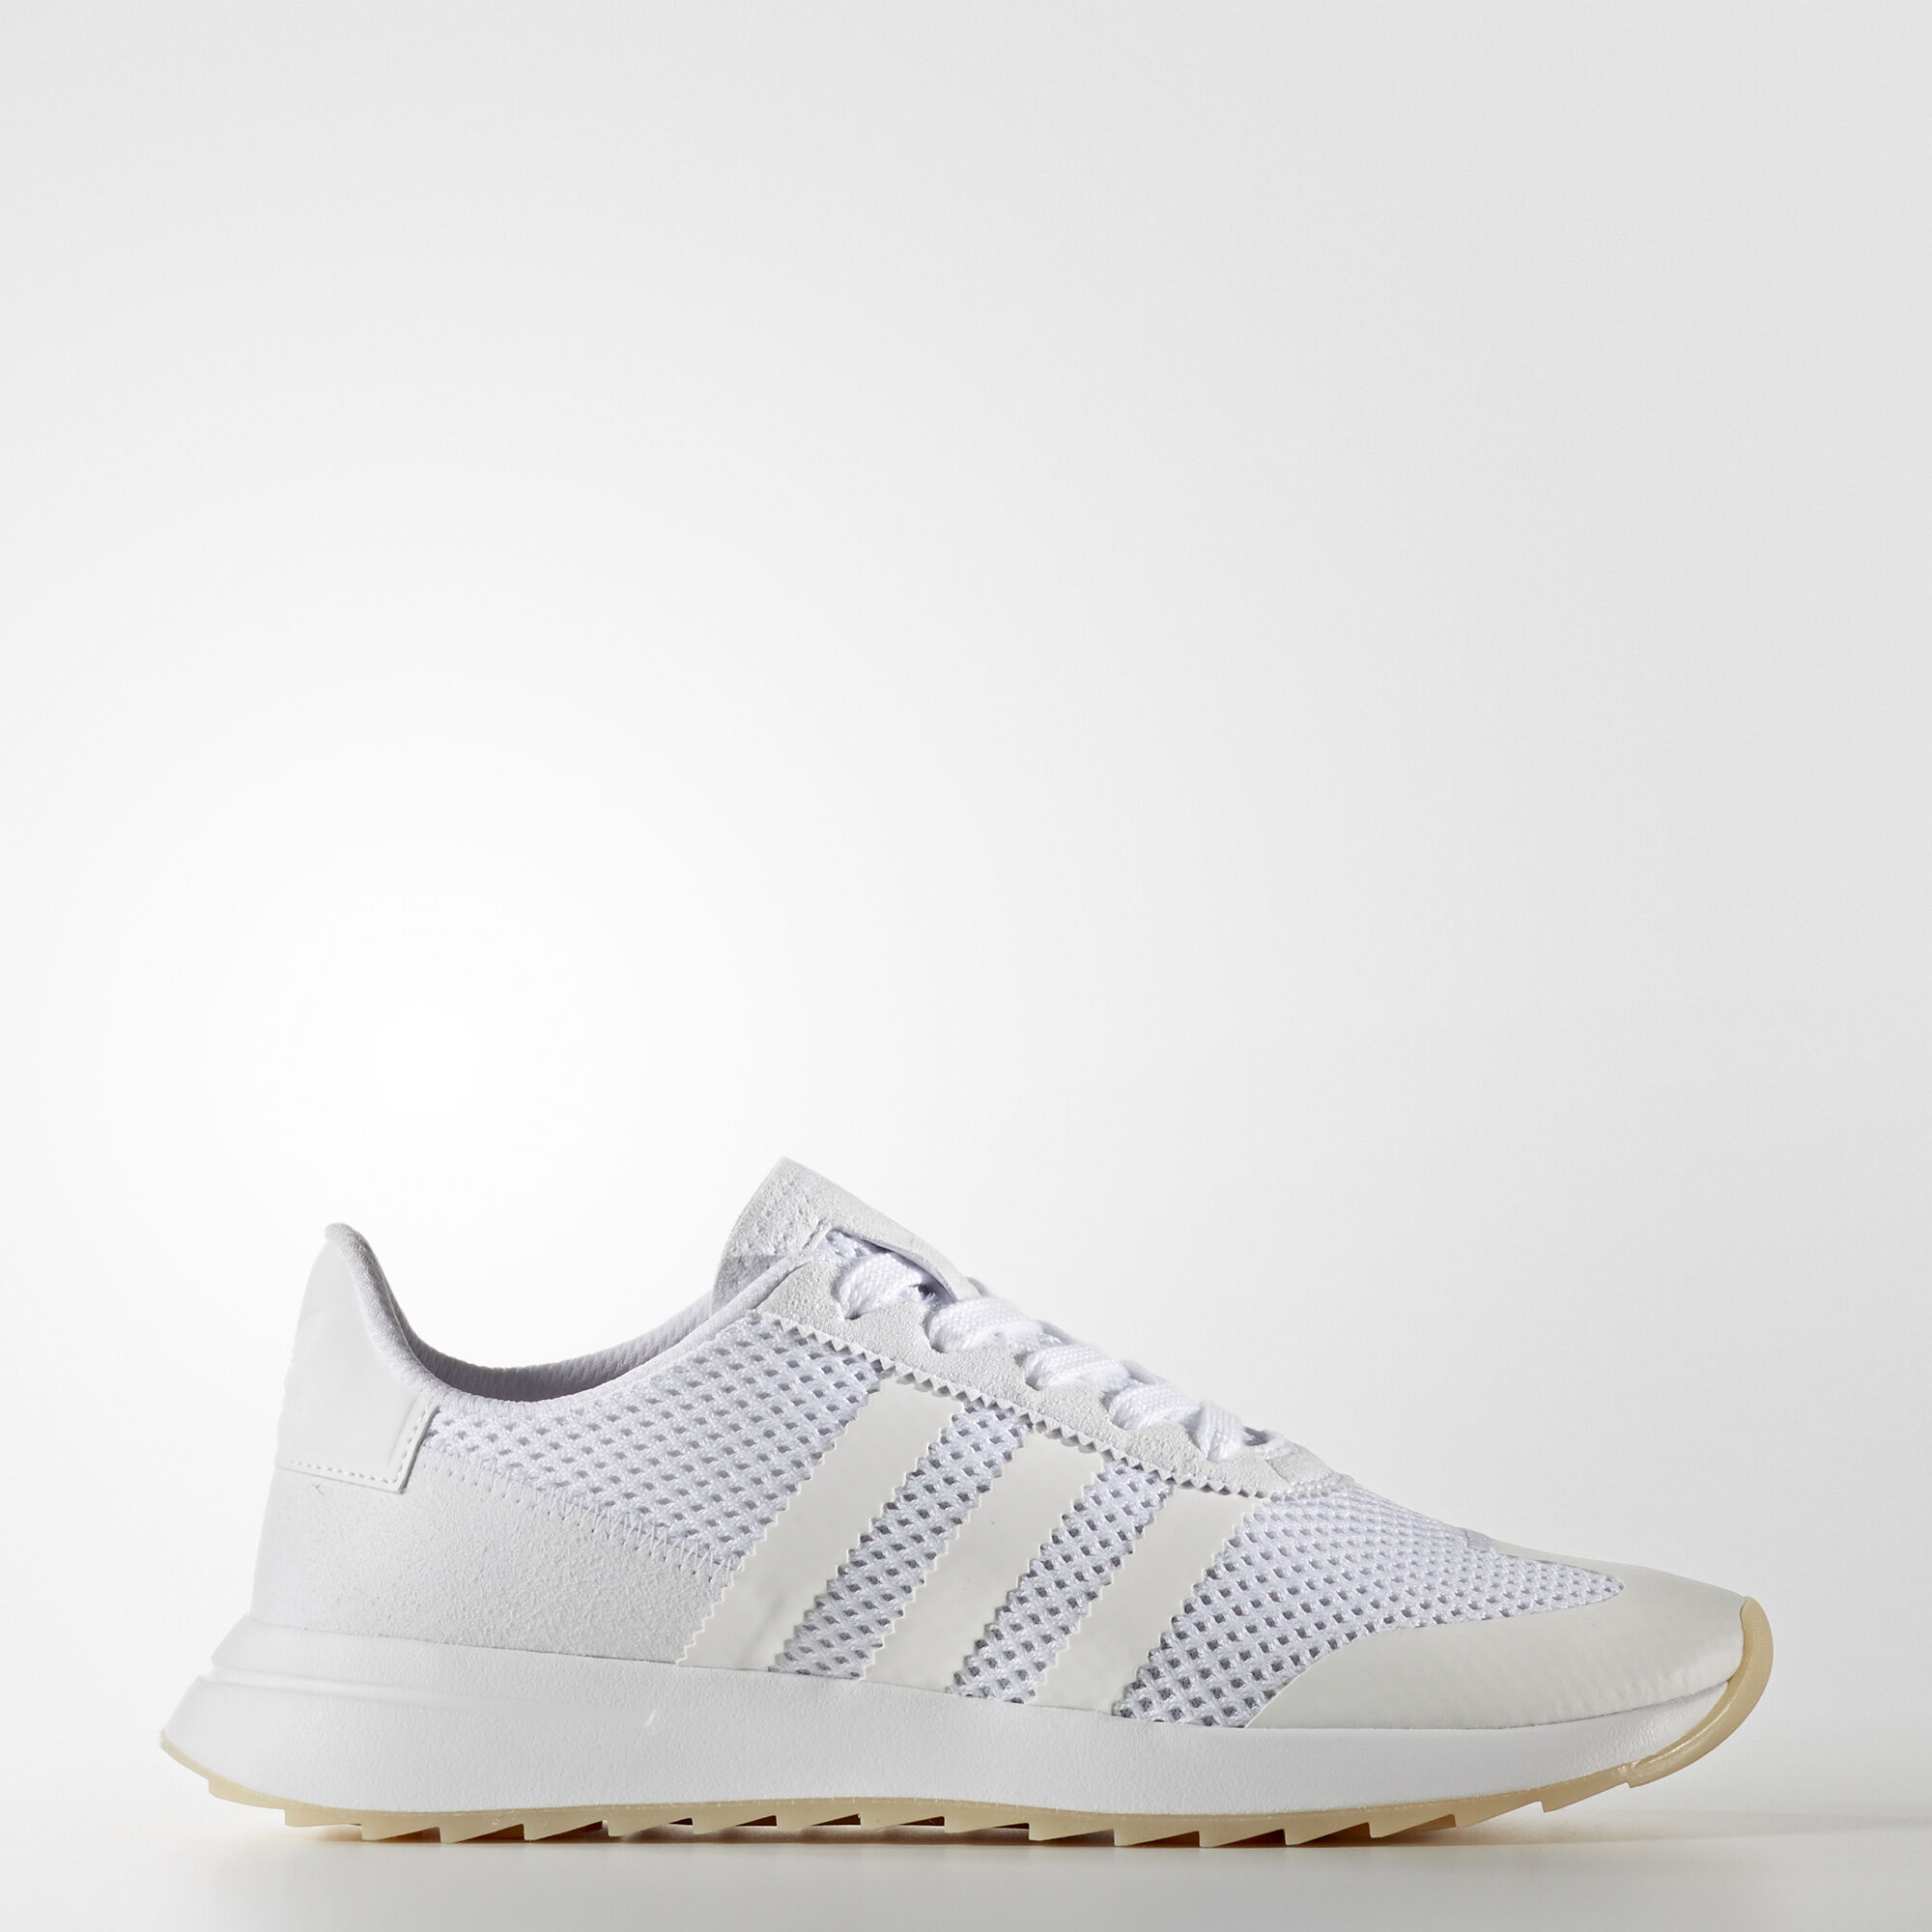 Adidas Shoes Women Images